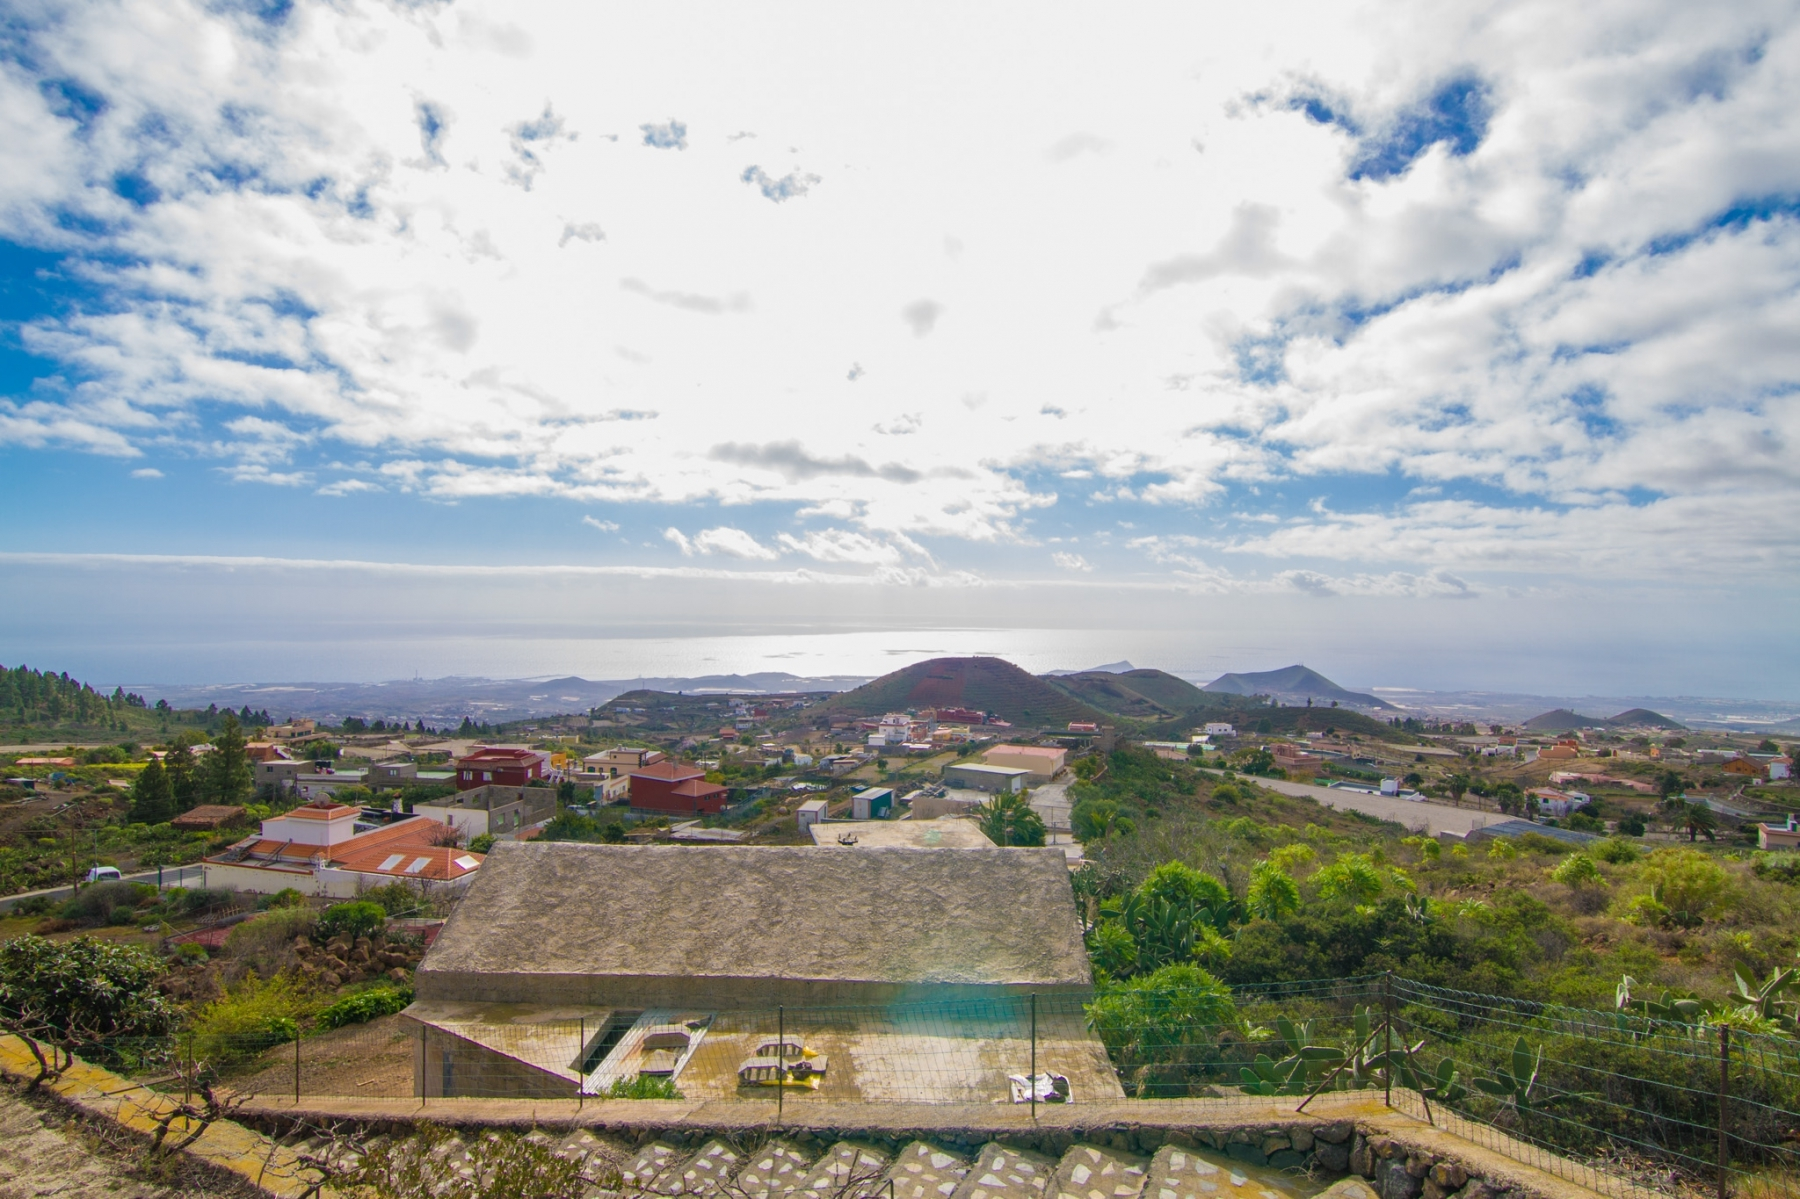 Properties for Sale in Tenerife, Canary Islands, Spain | SylkWayStar Real Estate. Finca with vineyard - Cruz de Tea - Granadilla de Abona . Image-21839